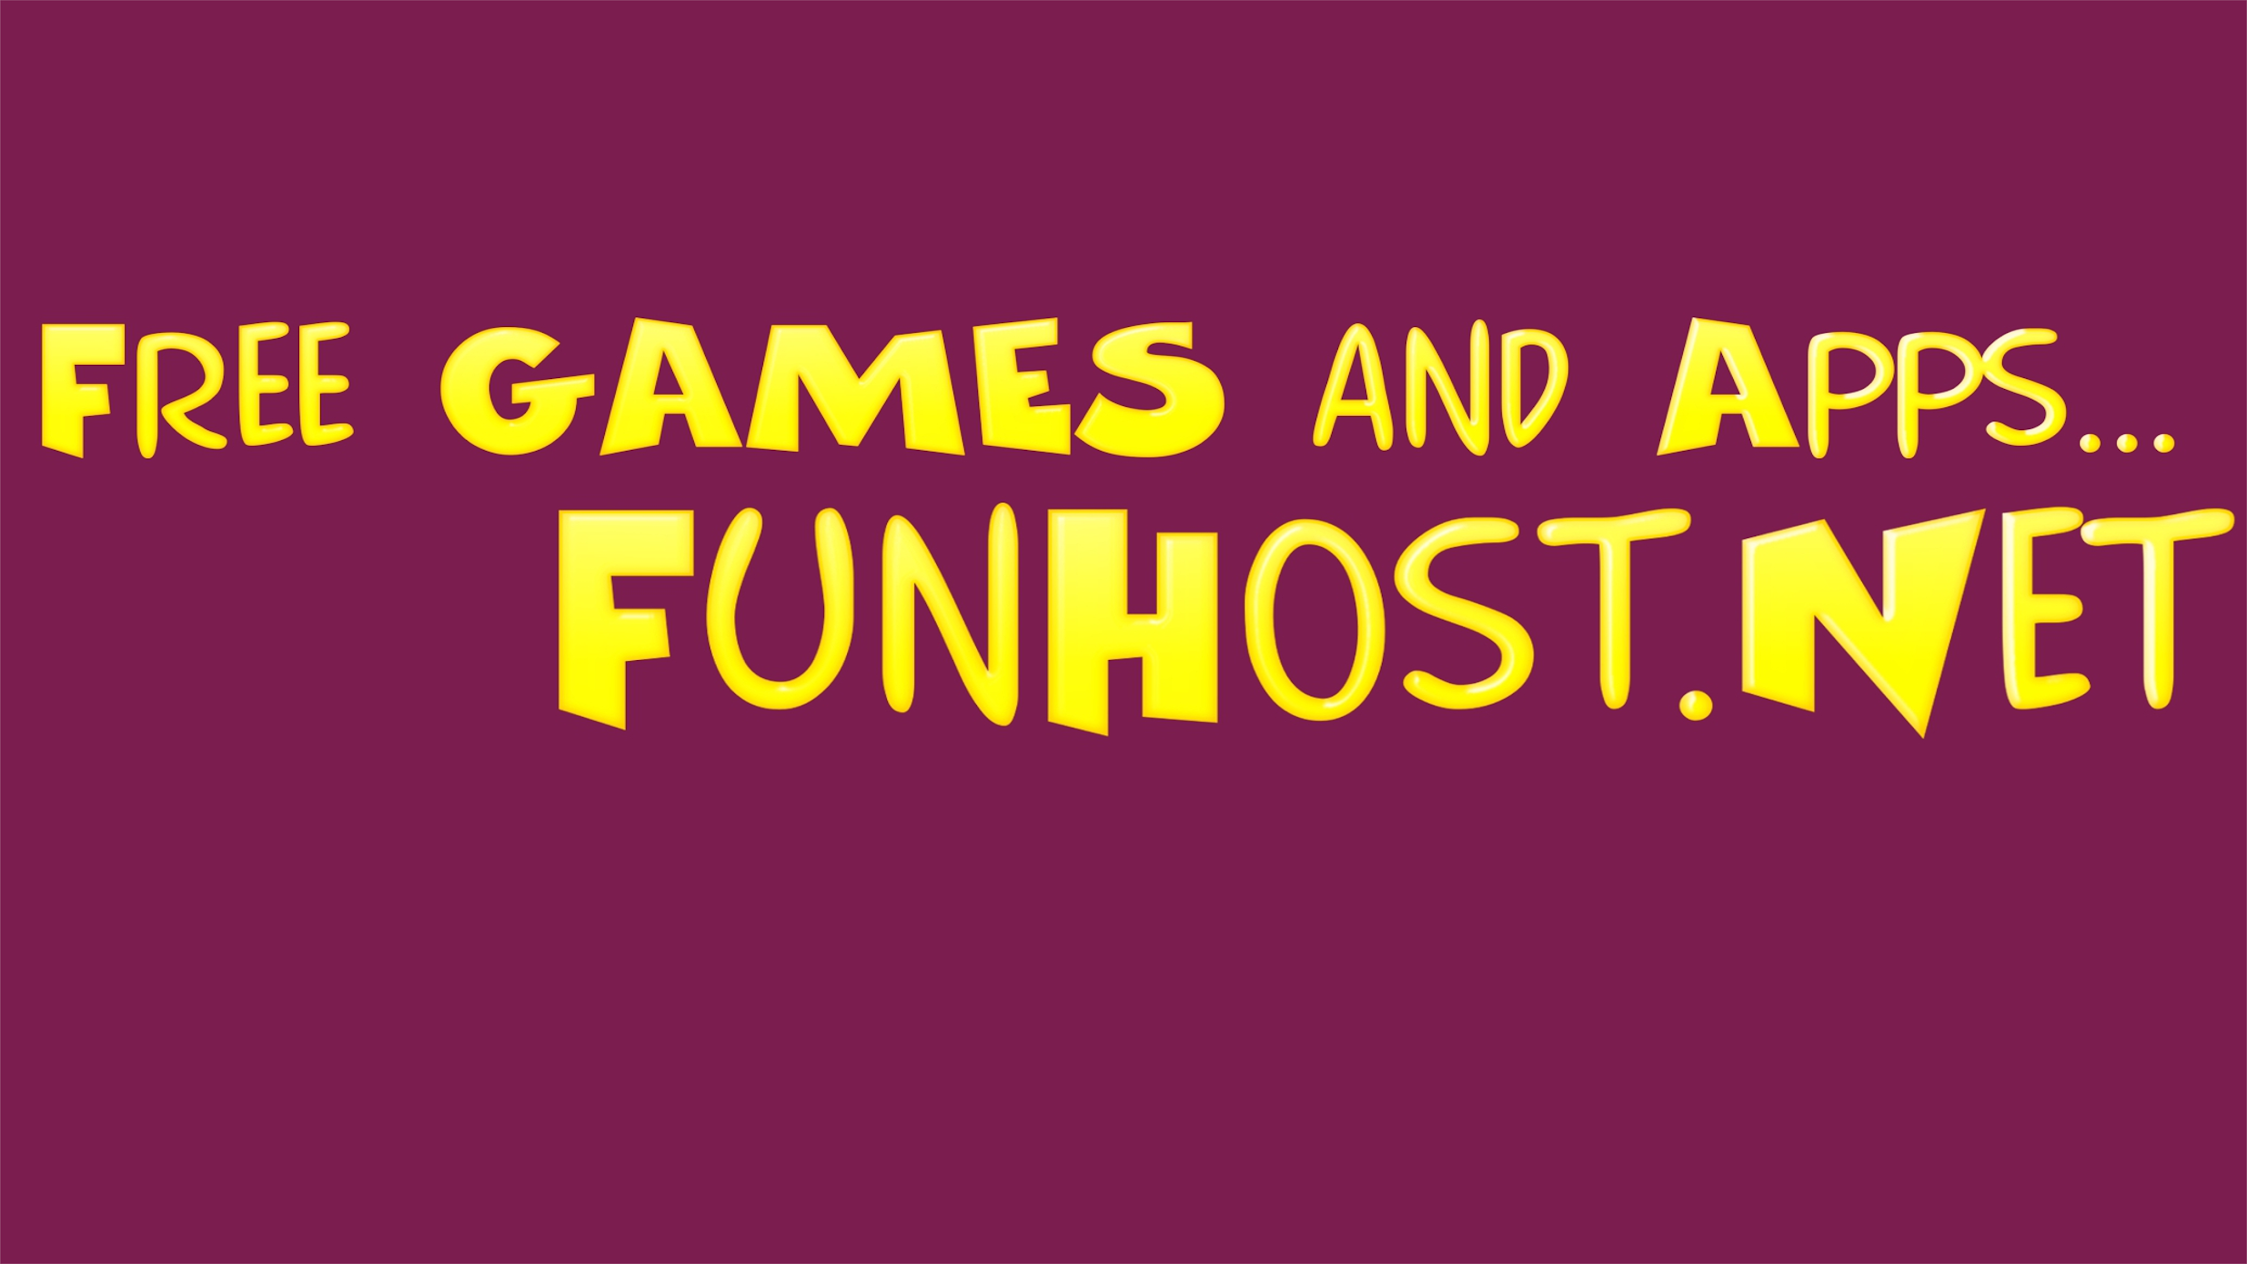 Fun Host Apps & Games